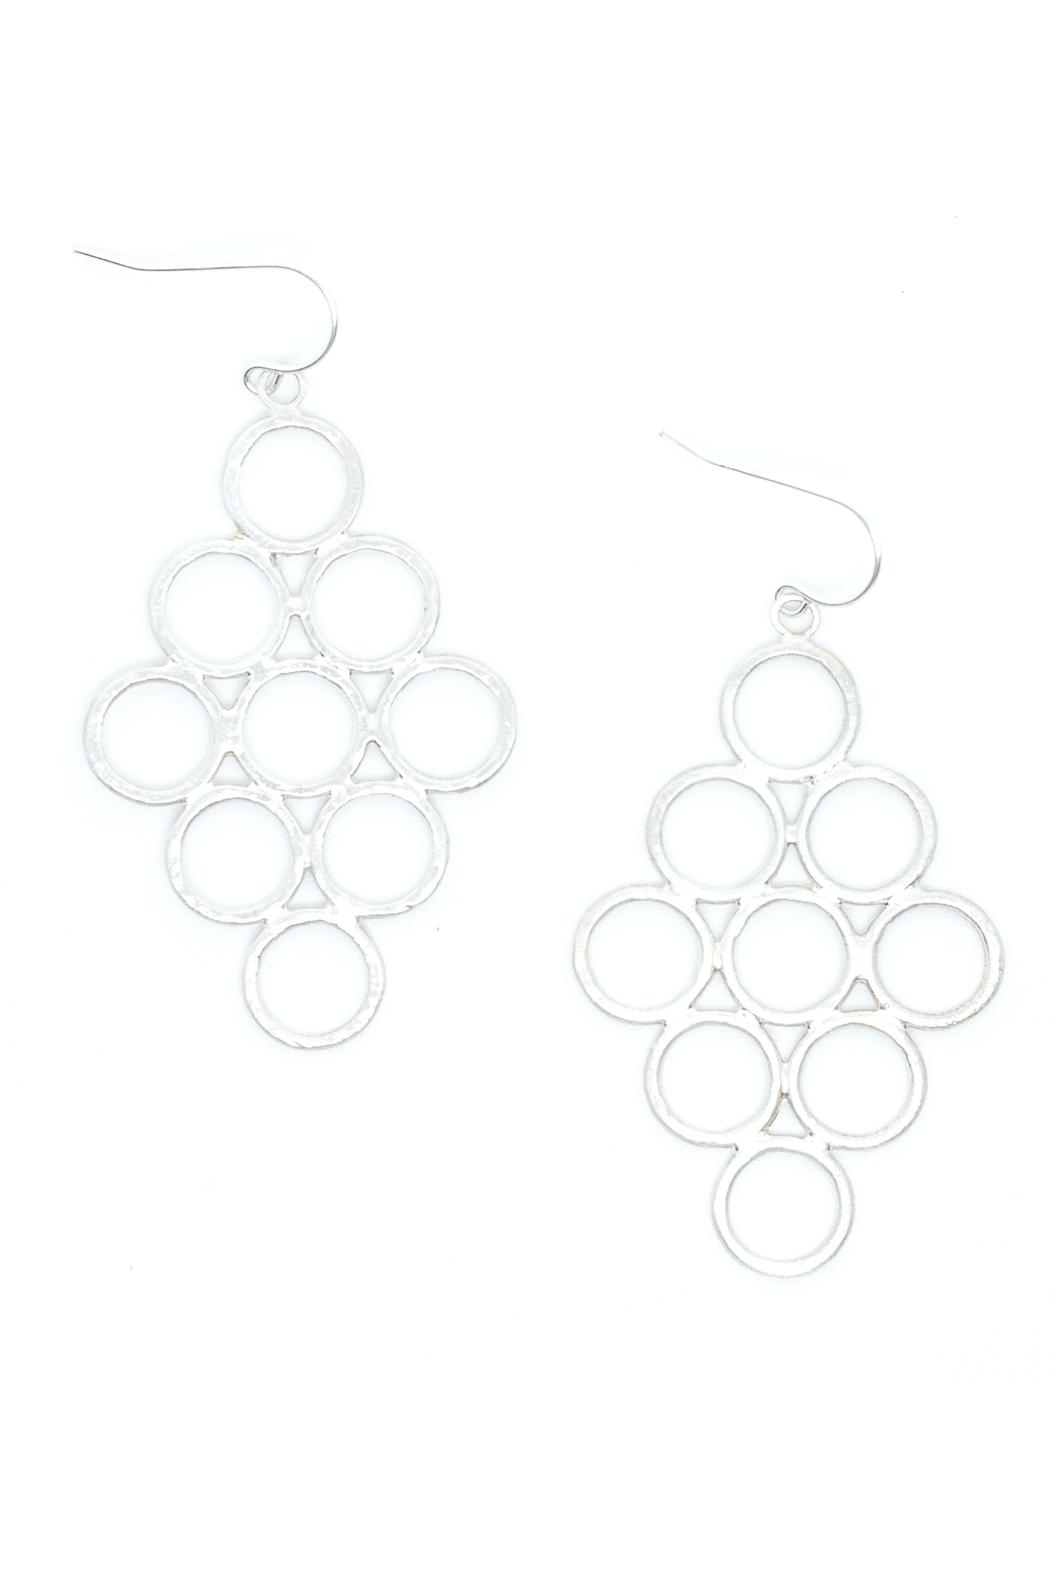 Kate Sydney Jewelry Honeycomb Silver Earrings - Main Image